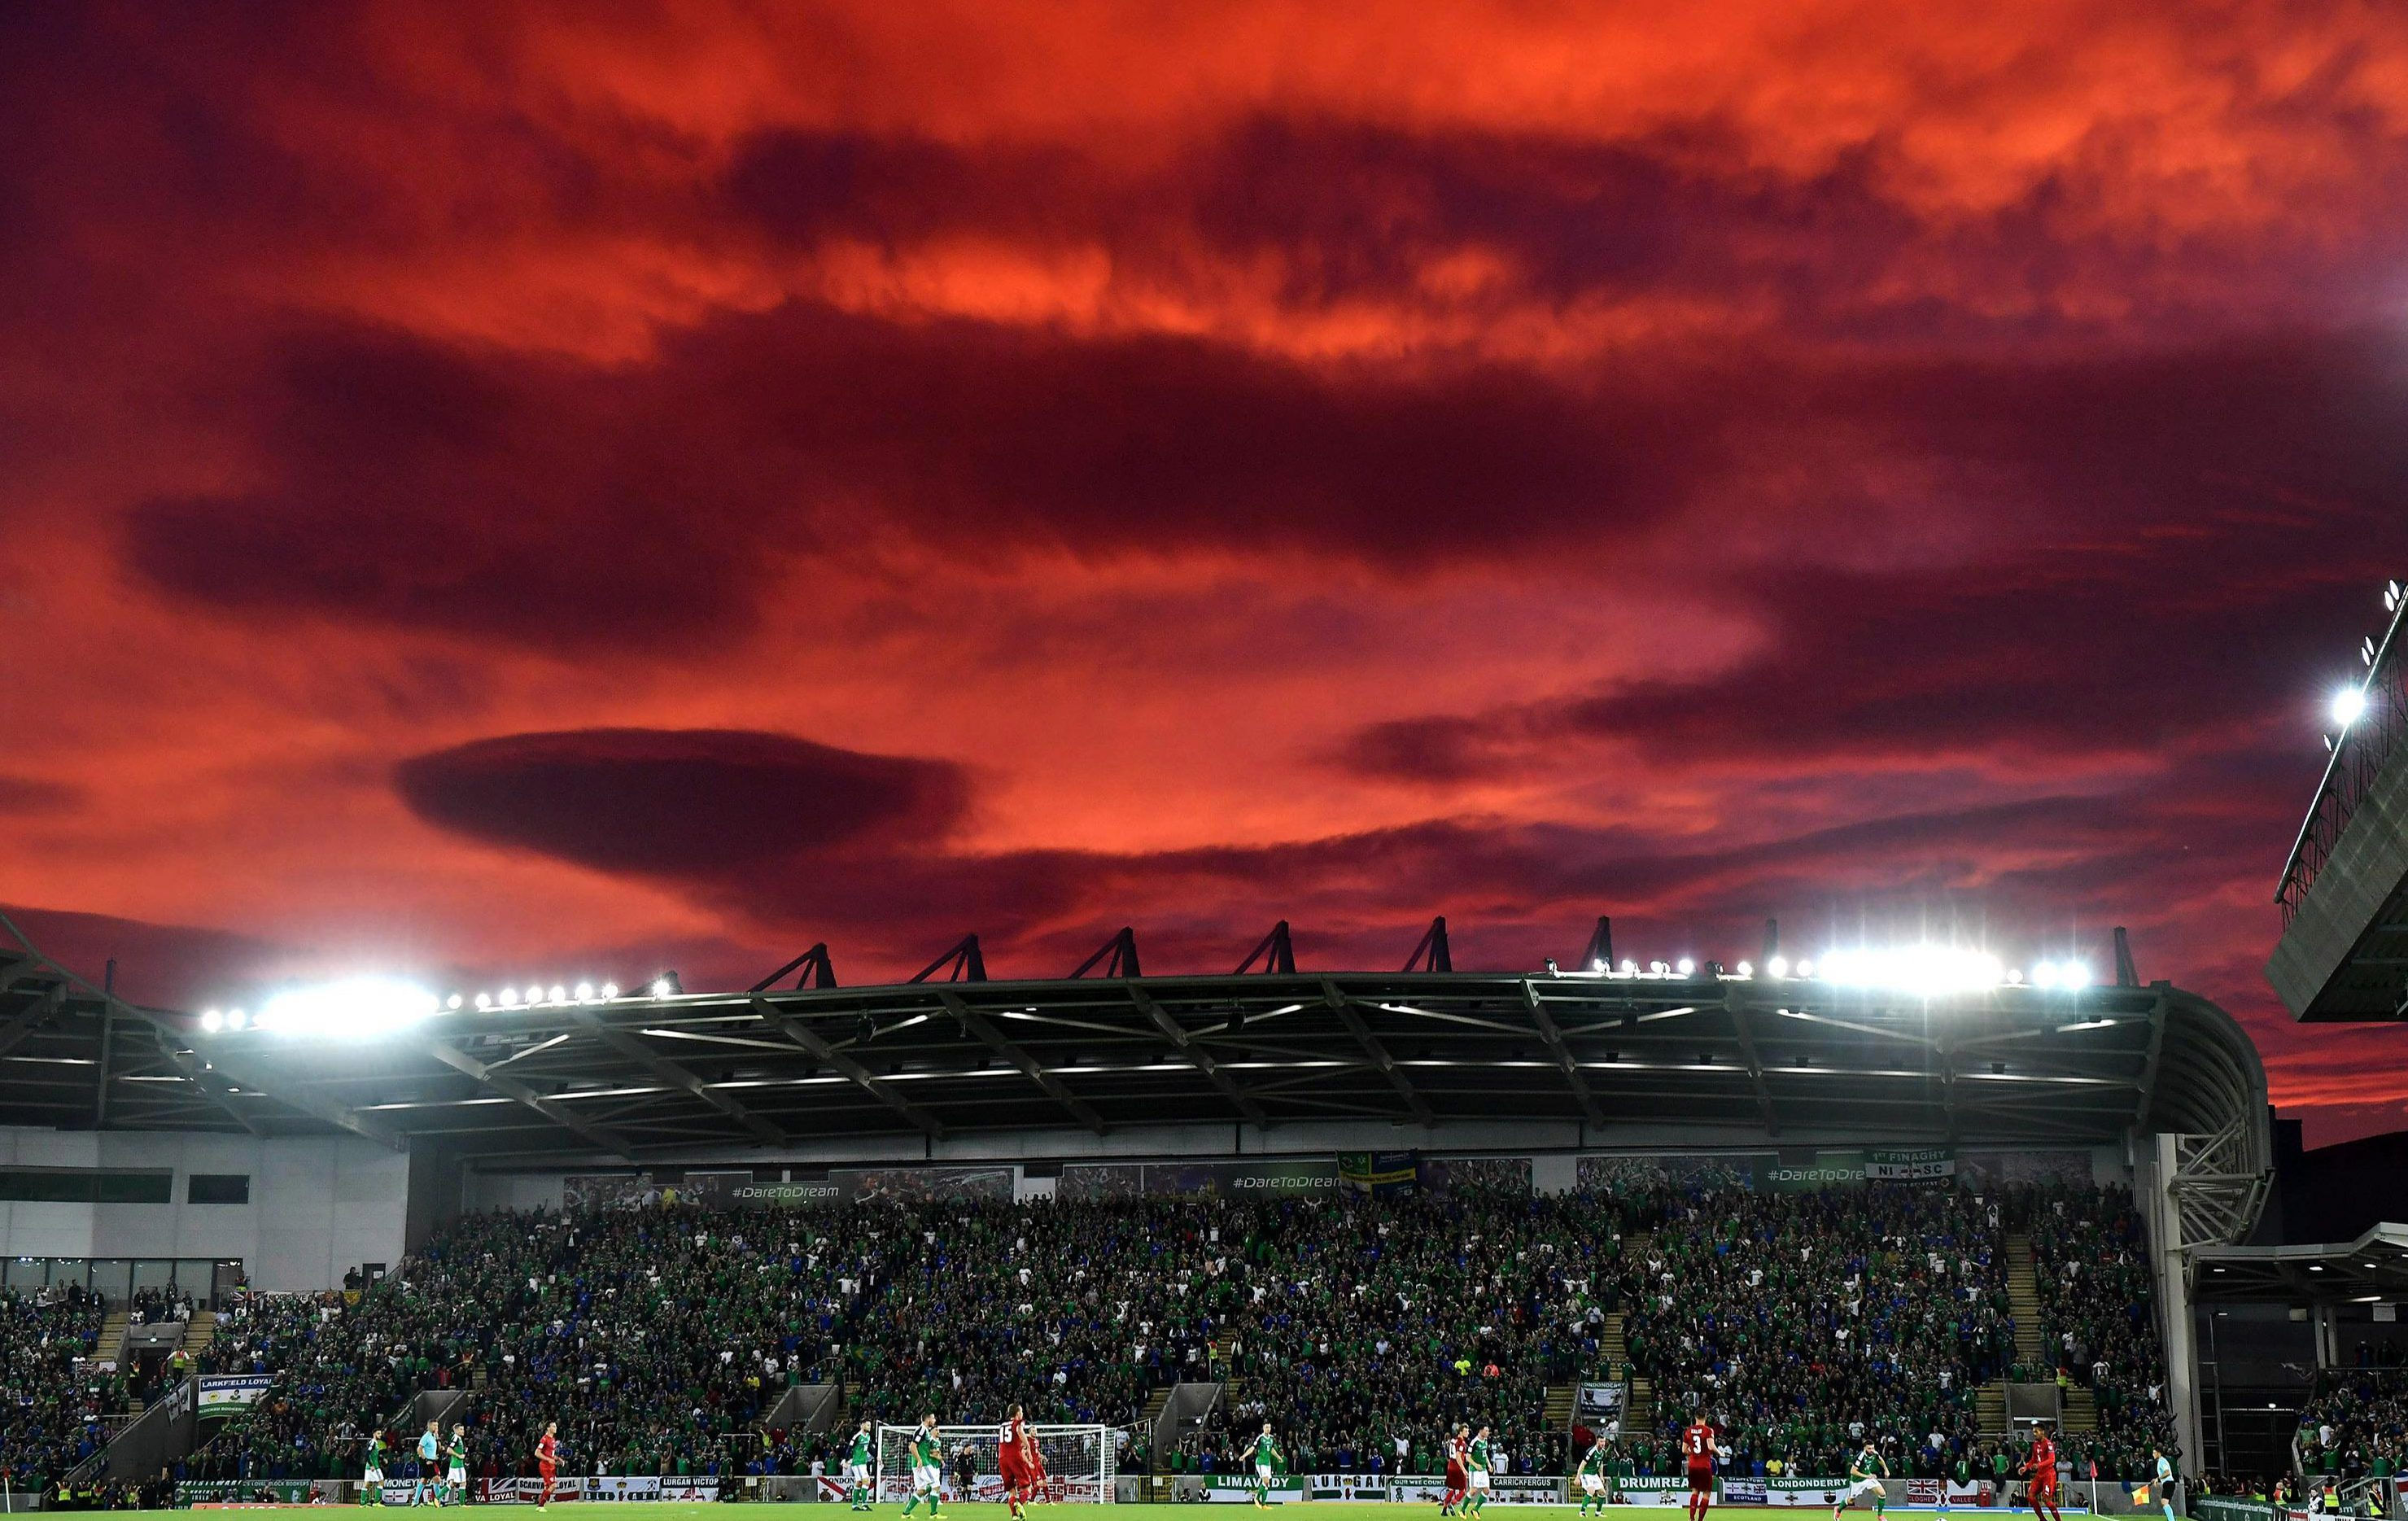 The World Cup qualifier between N.Ireland and Czech Republic set the sky on fire